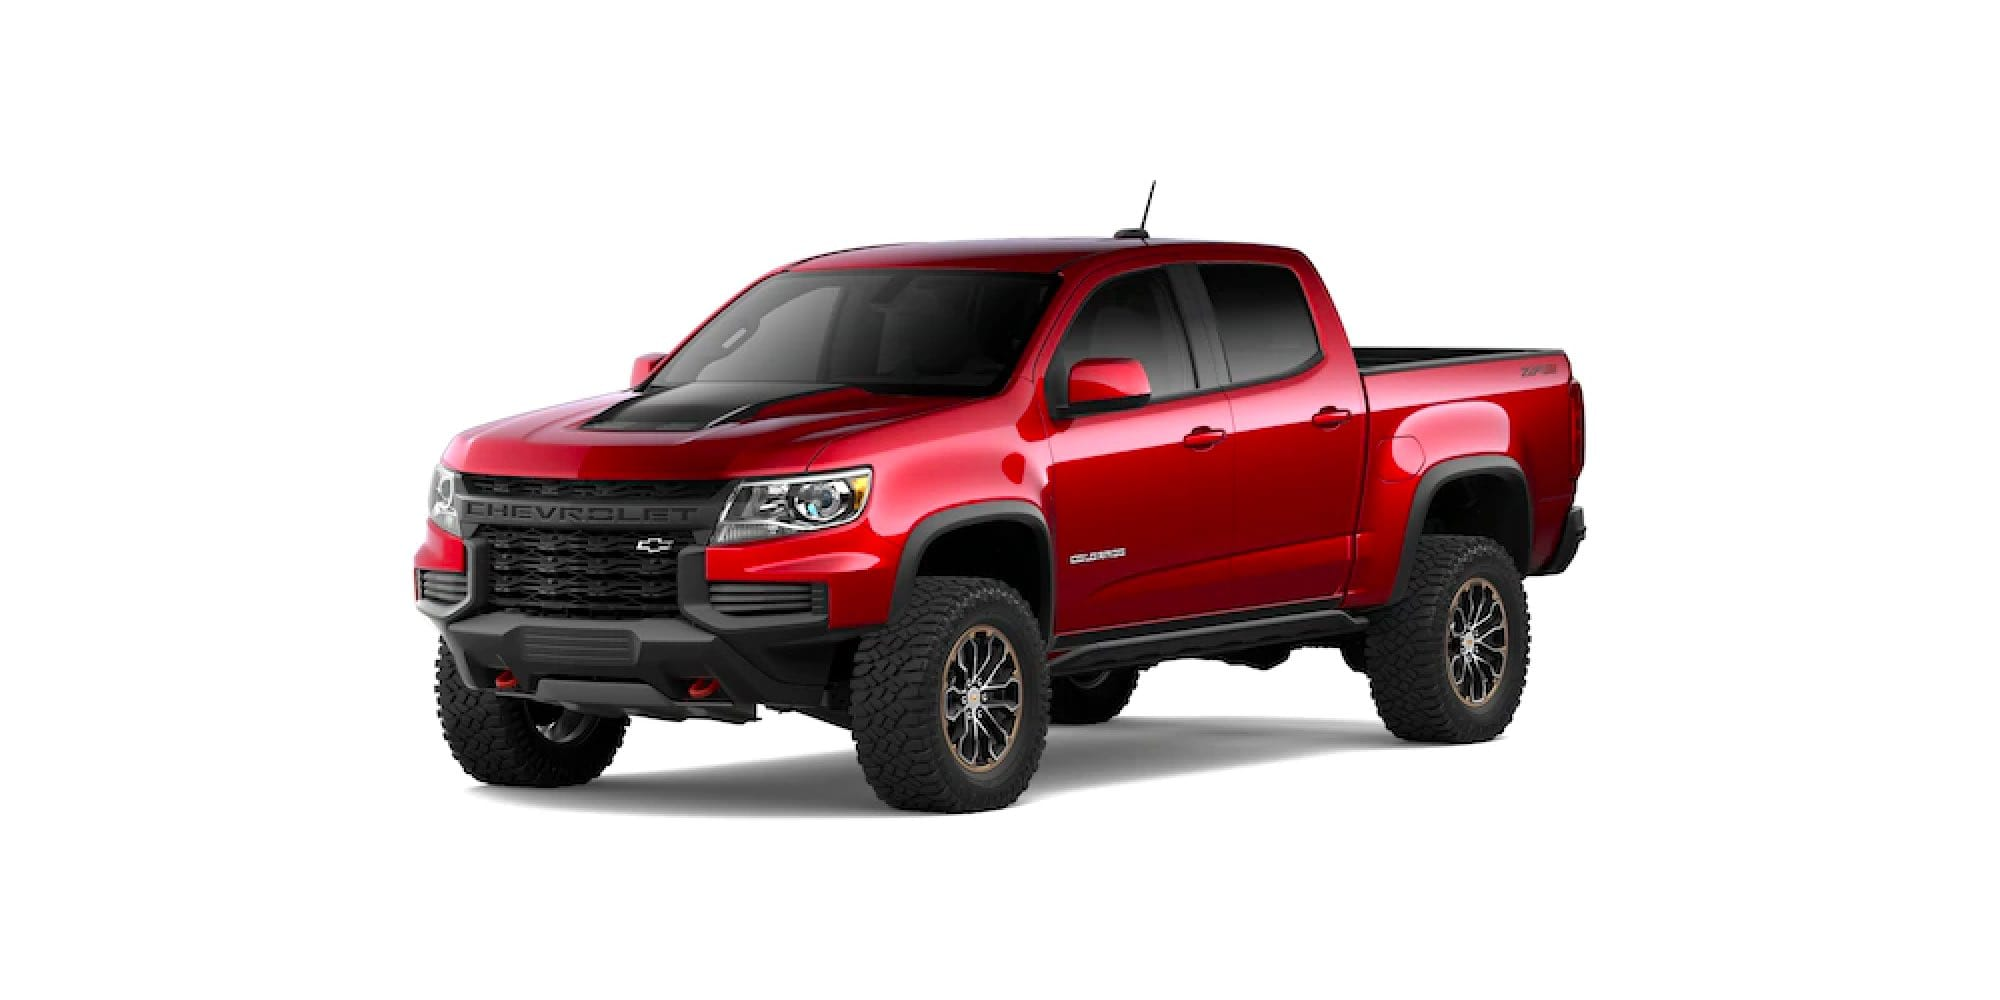 2021 Chevrolet Colorado in Cherry Red Tintcoat